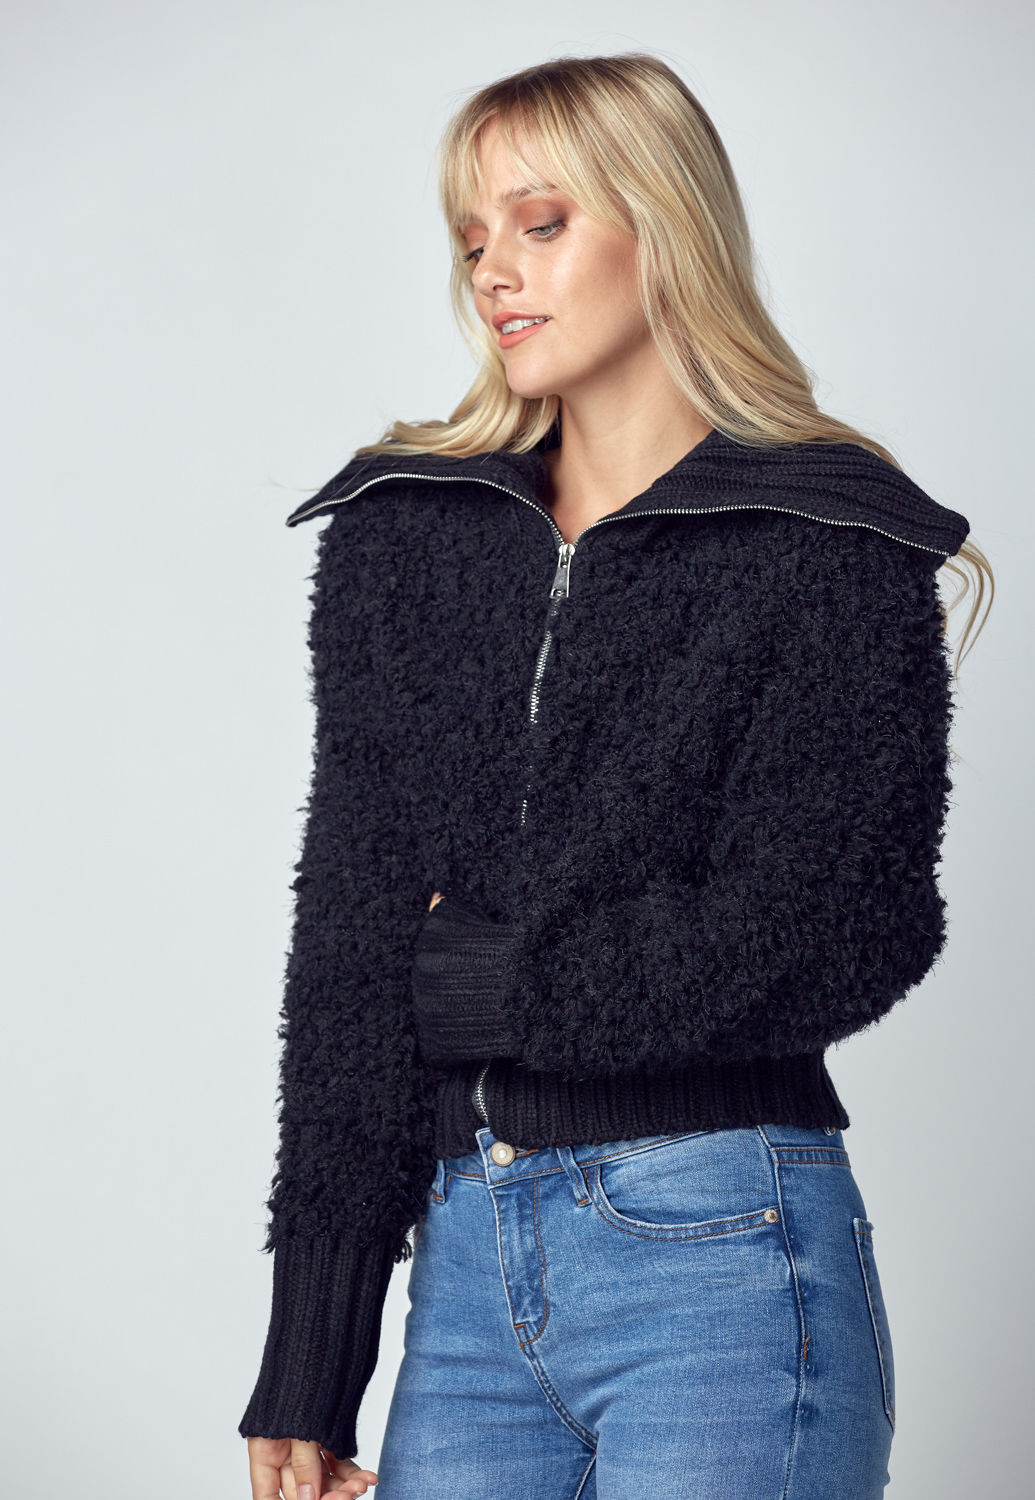 Fluffy Sweater Jacket